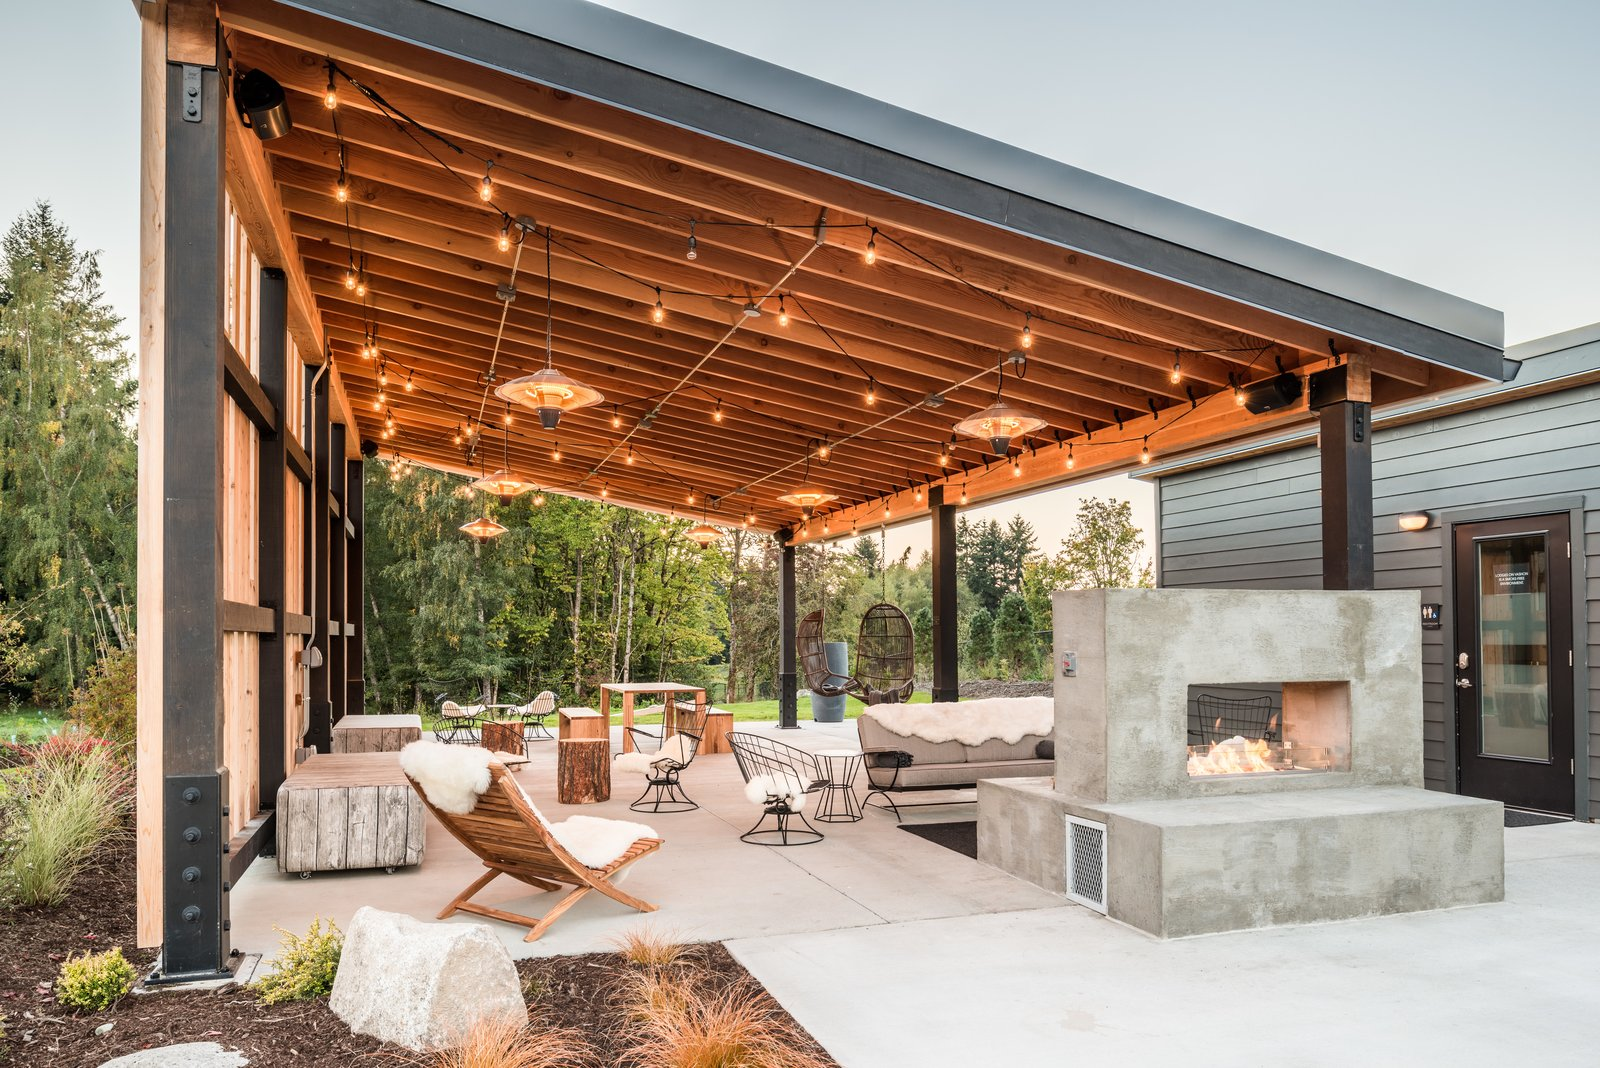 Outdoor, Concrete, Back Yard, Shrubs, Trees, Large, Hanging, and Grass The Pavilion has plenty of cozy seating, a cast concrete fireplace, and a sound system.  Best Outdoor Hanging Photos from Serenity Awaits at These Prefab Cabin Rentals on Vashon Island